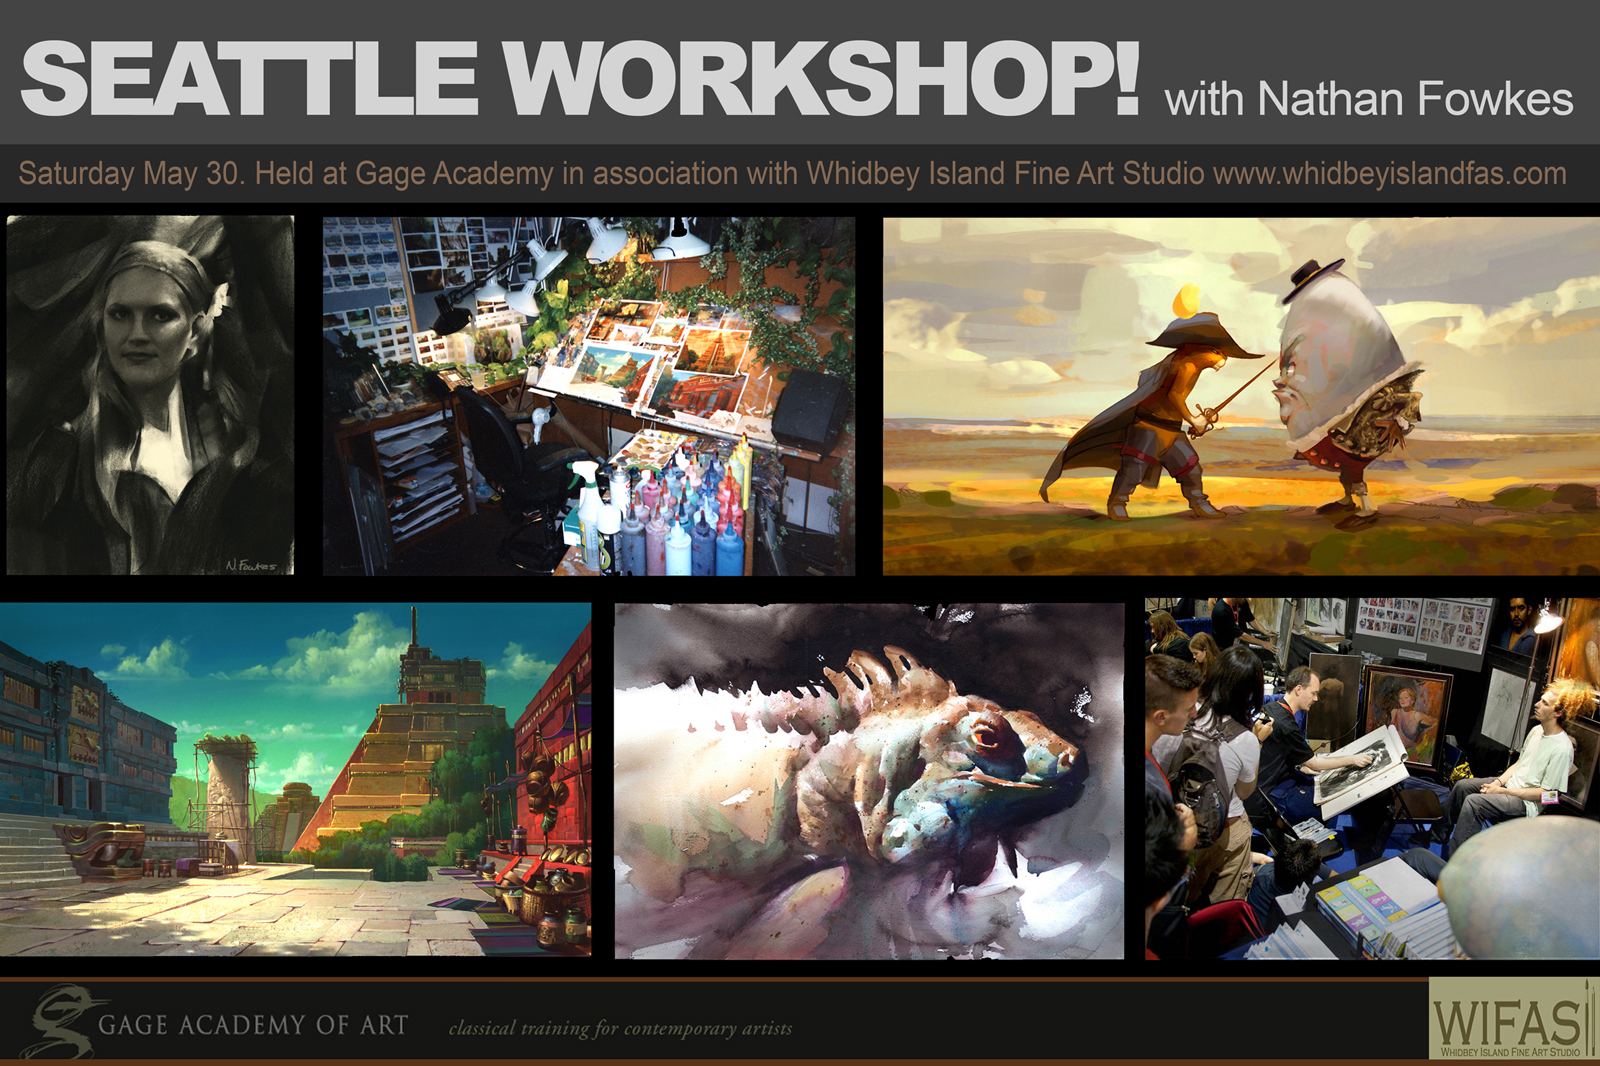 http://www.whidbeyislandfas.com/workshops/nfowkes_2015.html